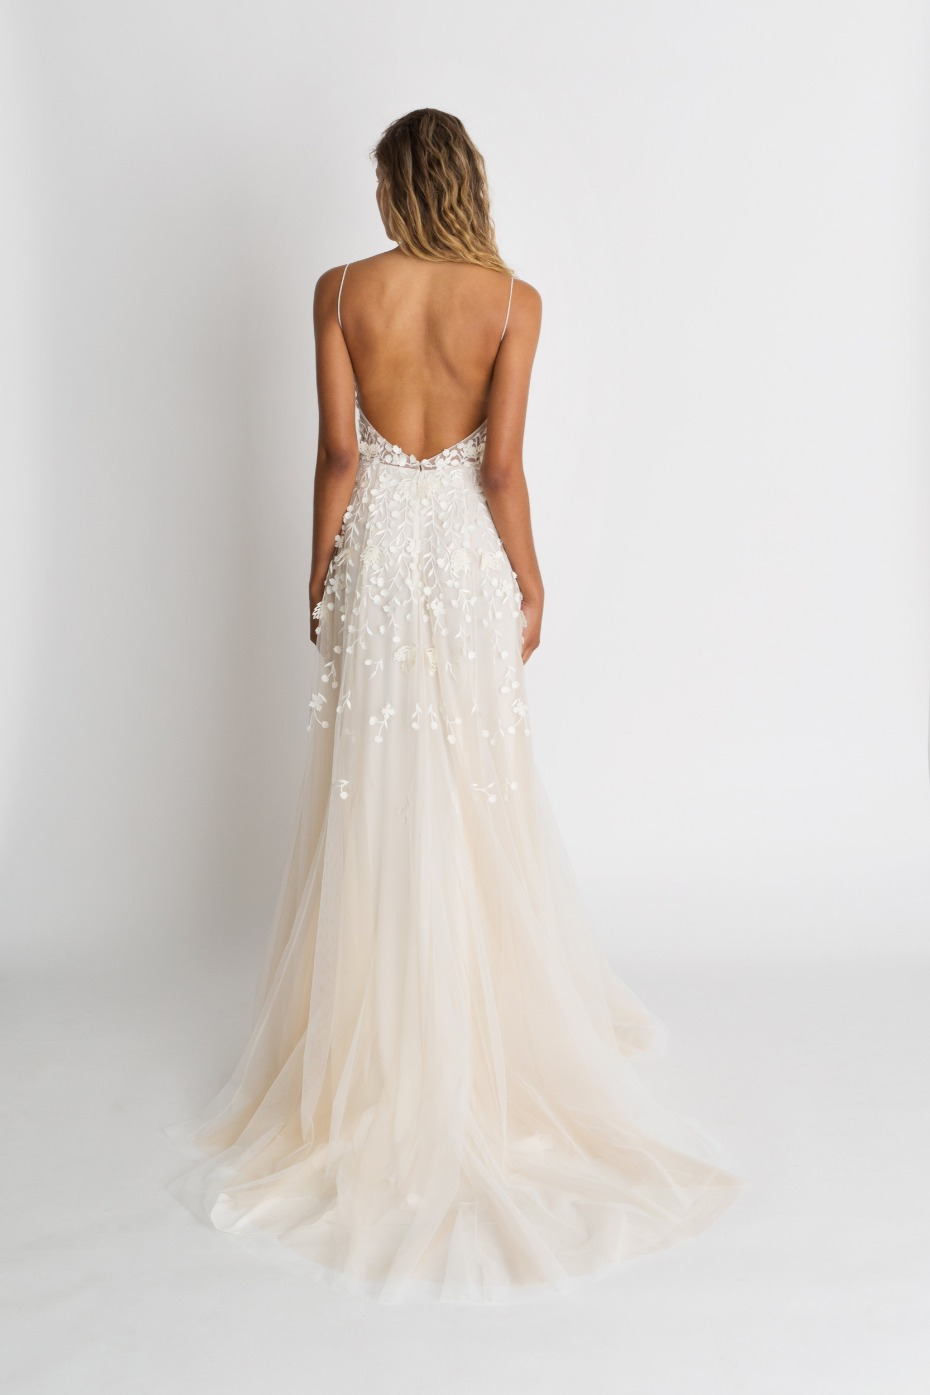 The Lana Gown by Alexandra Grecco